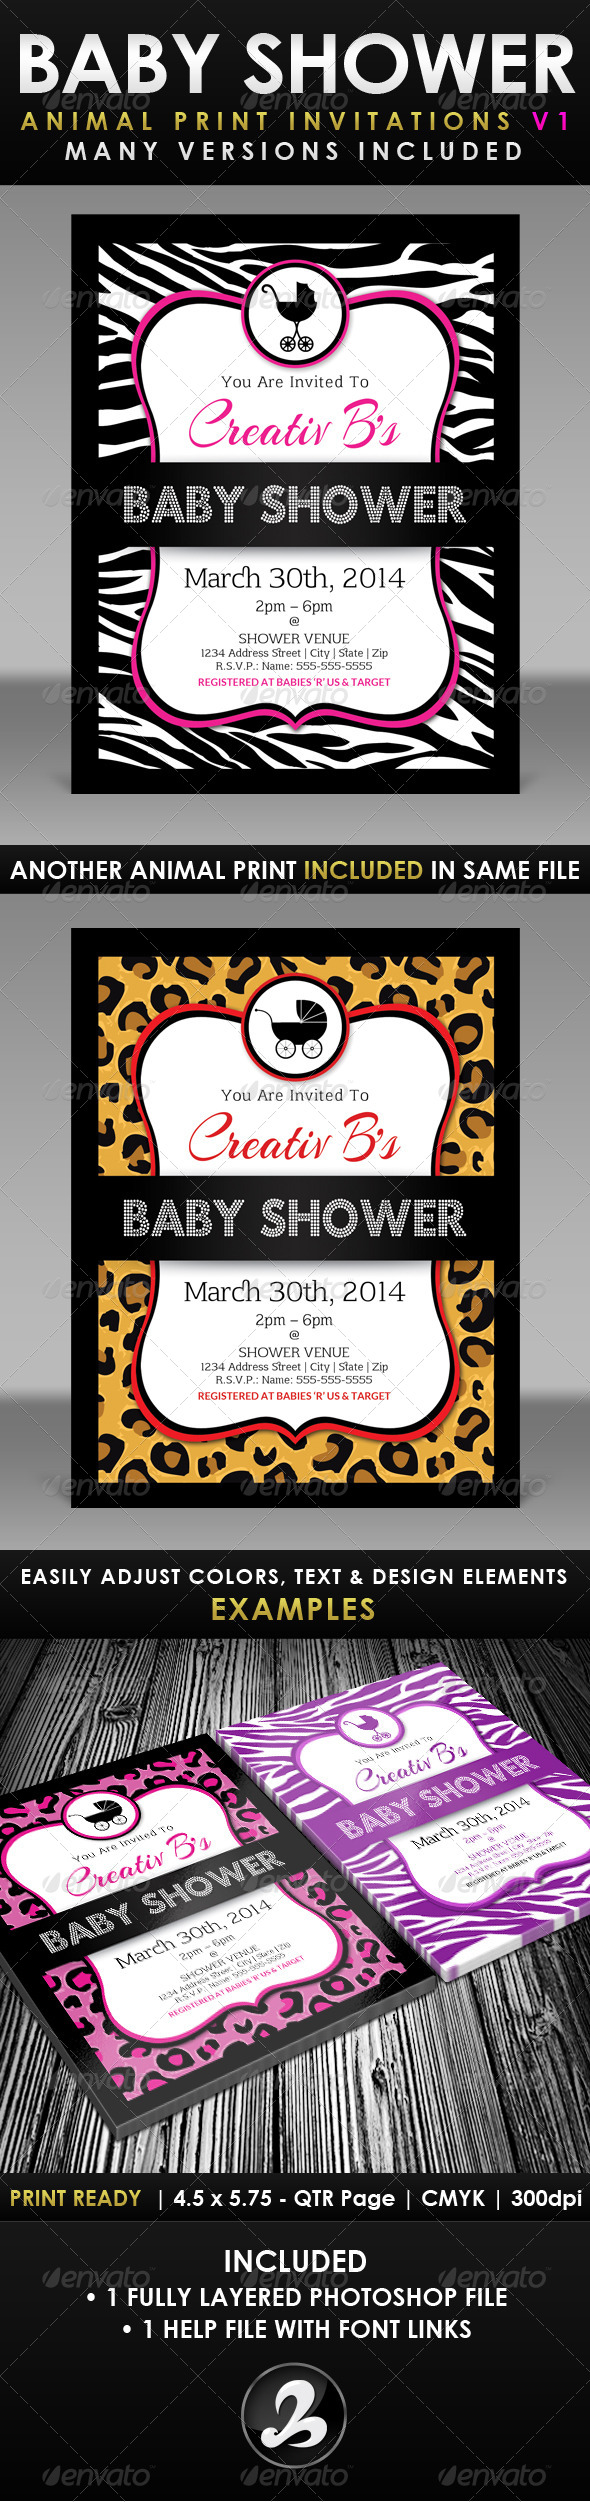 GraphicRiver Baby Shower Invitation Template Animal Print v1 6546321